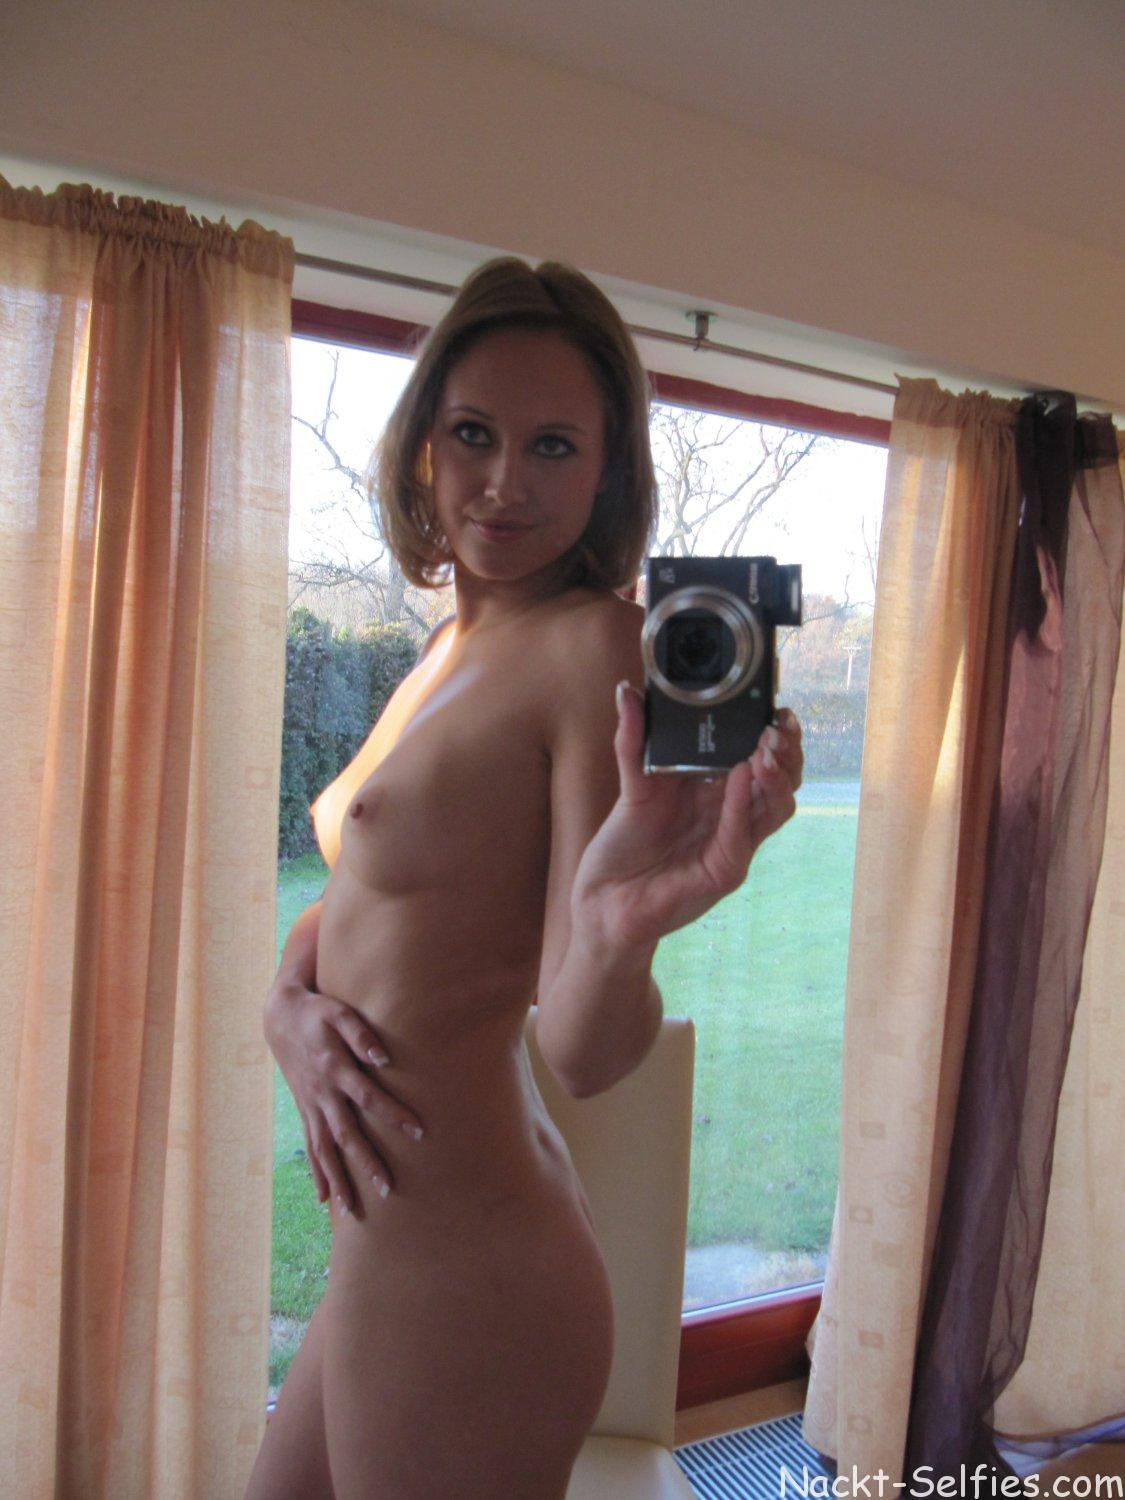 Privater Erotik Self Shot Ella 010